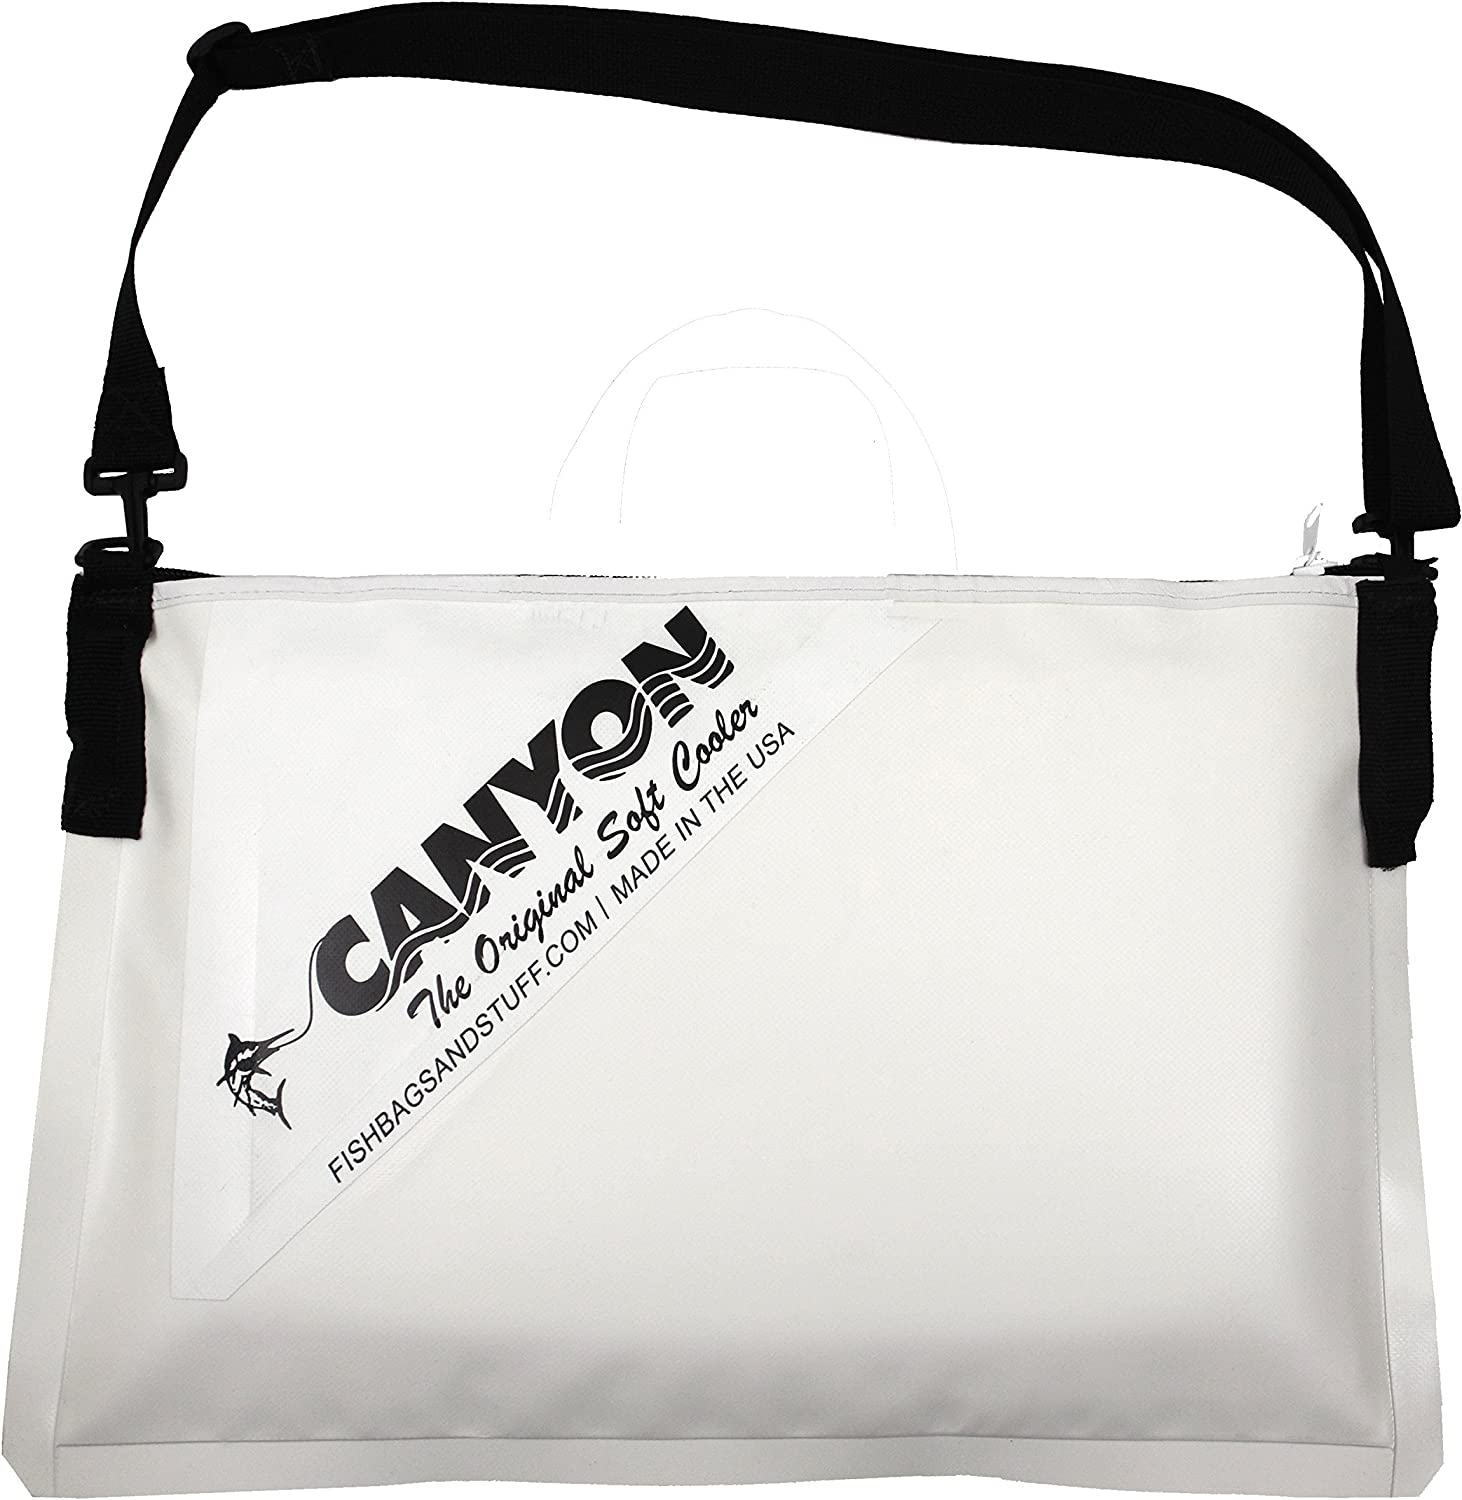 CANYON Insulated Fish Cooler Bags - All Sizes - Made in The USA